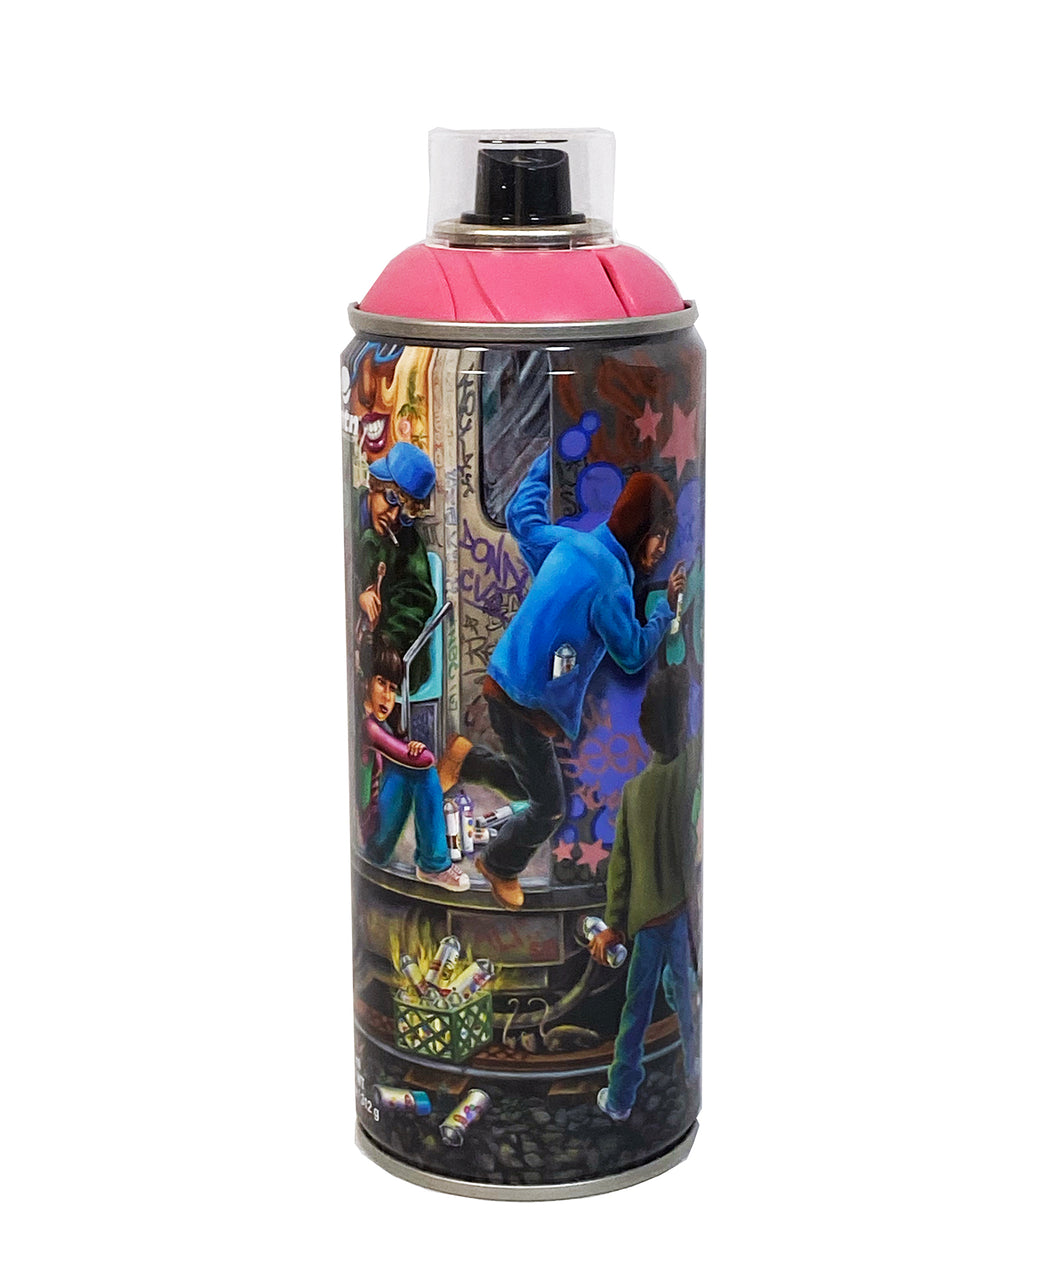 LADY PINK 'Teamwork' Collectible Spray Can